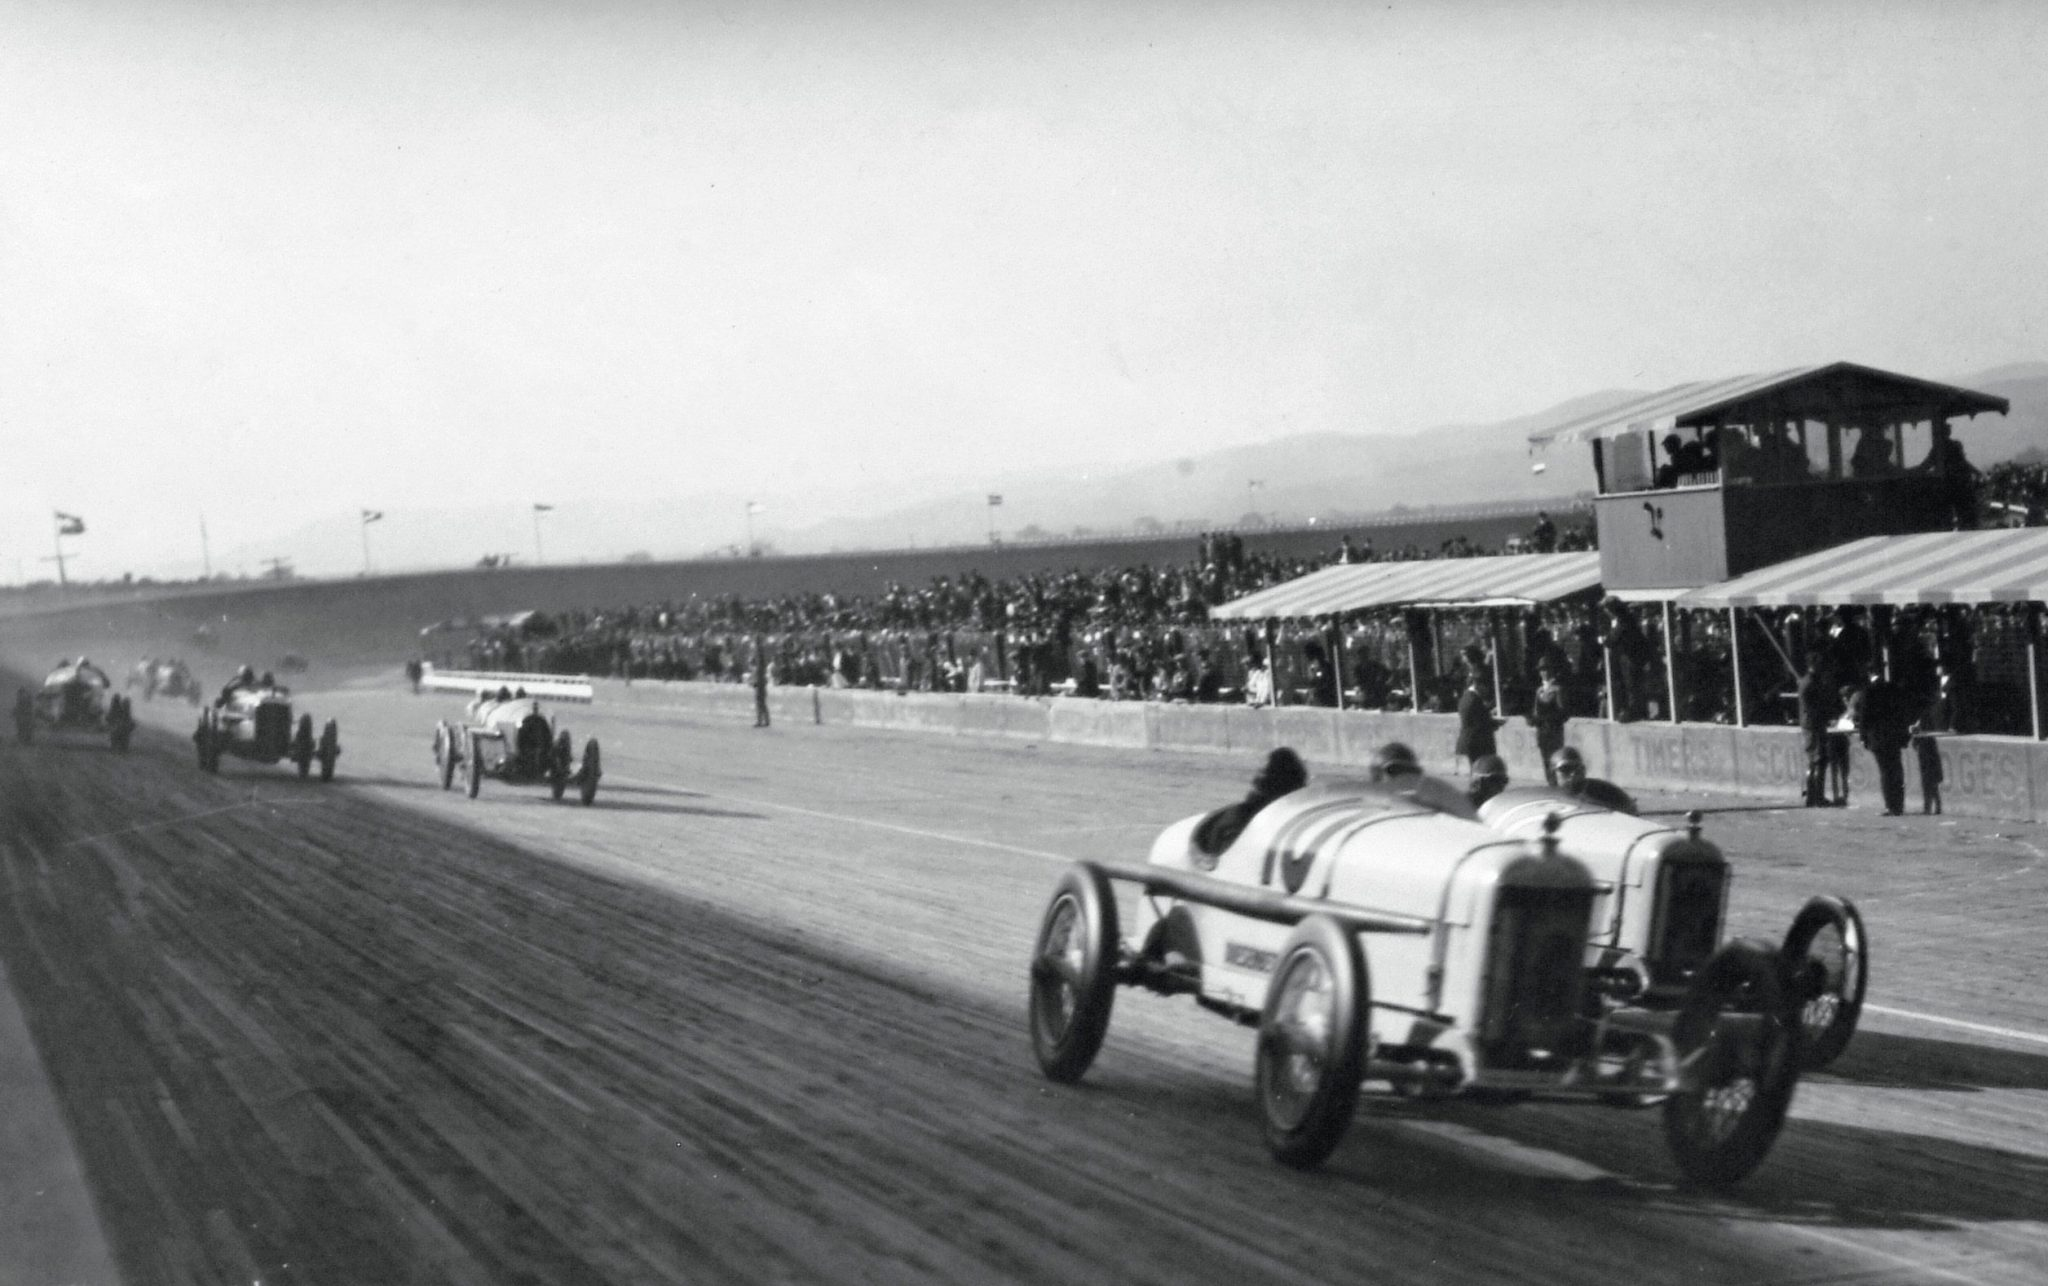 When you mention Beverly Hills, California, the one thing that doesn't come to mind is a racetrack, but in the 1920s there was indeed a racetrack in Beverly Hills, and in 1920 Duesenberg Brothers Engineering entered four cars in the April race. Tommy Milton who started in 11th position and finished third drove car No.10. The first four cars in the picture are all Duesenbergs.